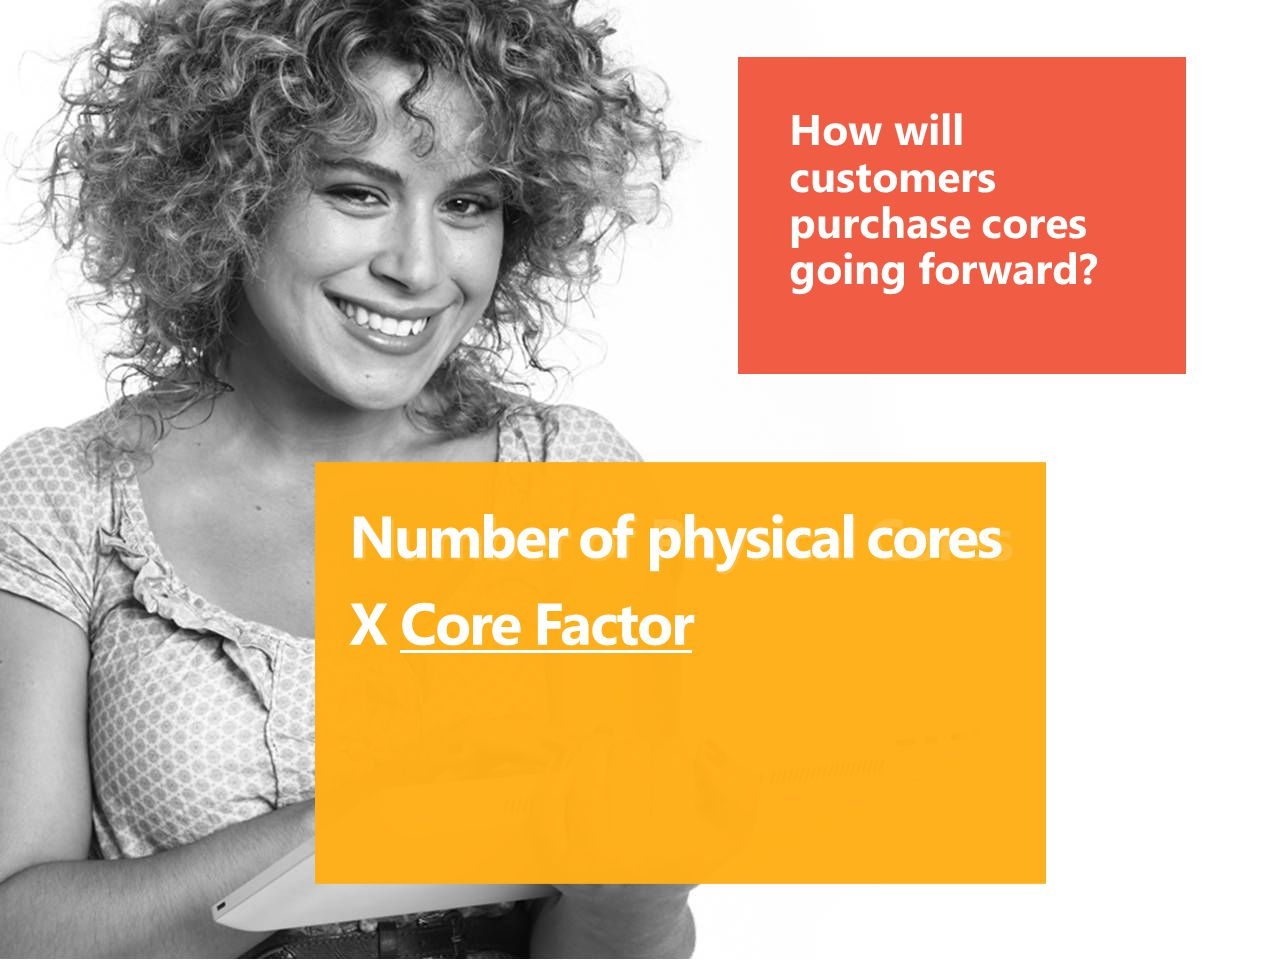 Number of Physical Cores How will customers purchase cores going forward? Number of physical cores X Core Factor